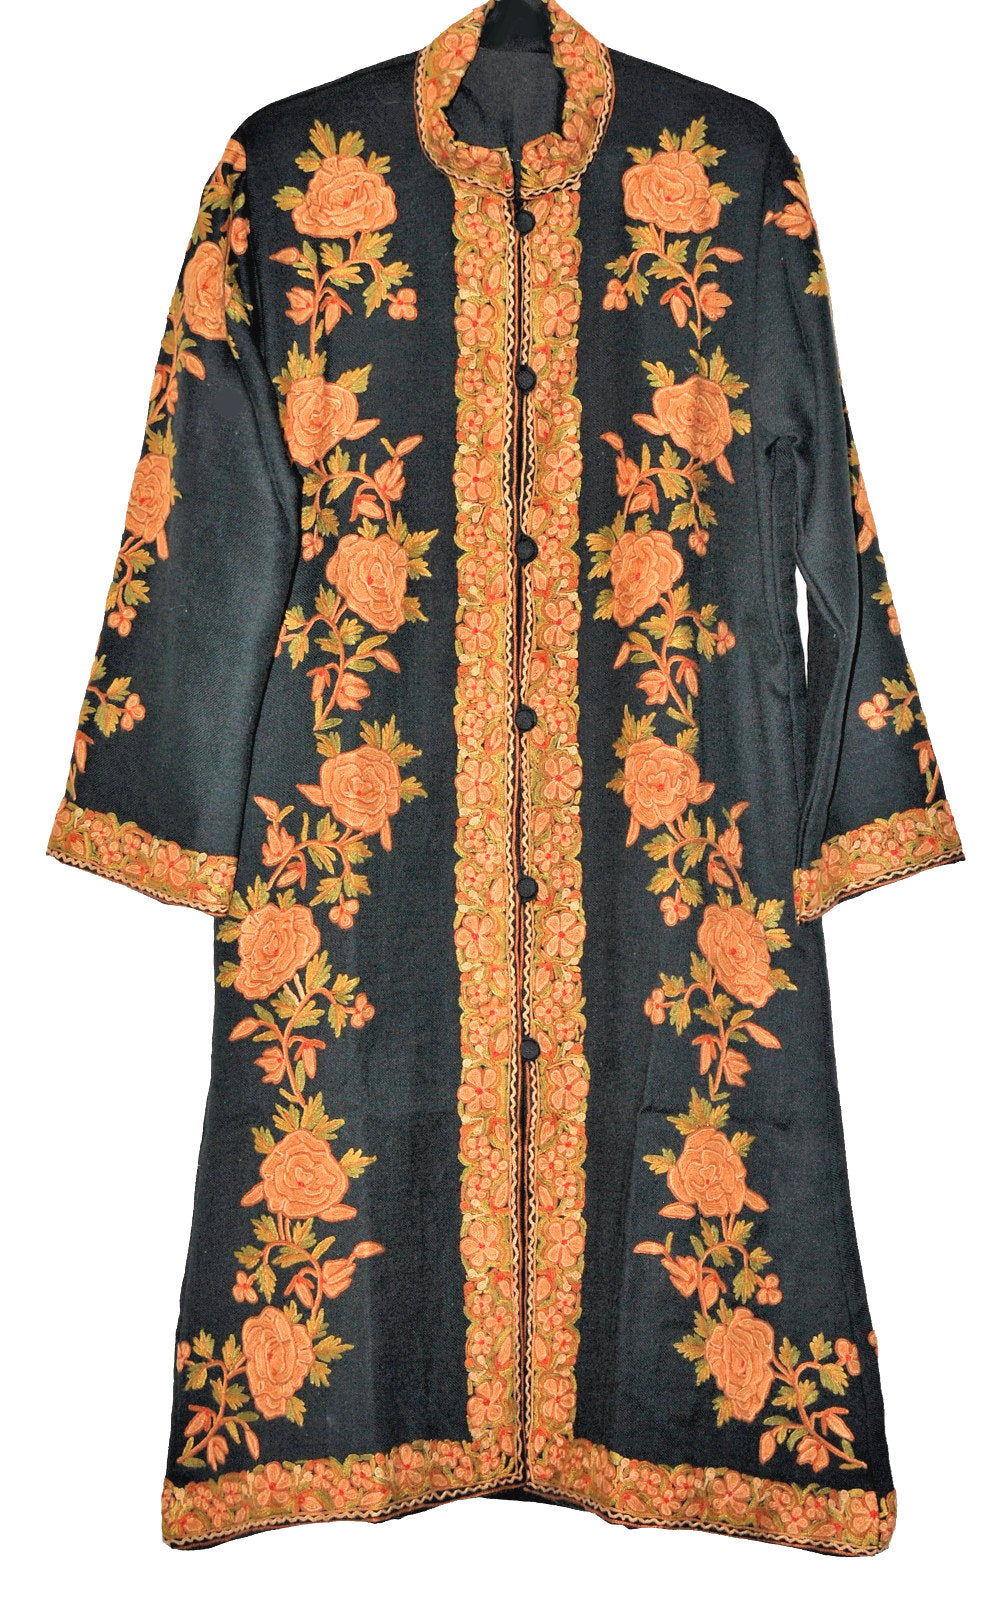 Woolen Embroidered Coat Black, Rust and Olive Embroidery #AO-160